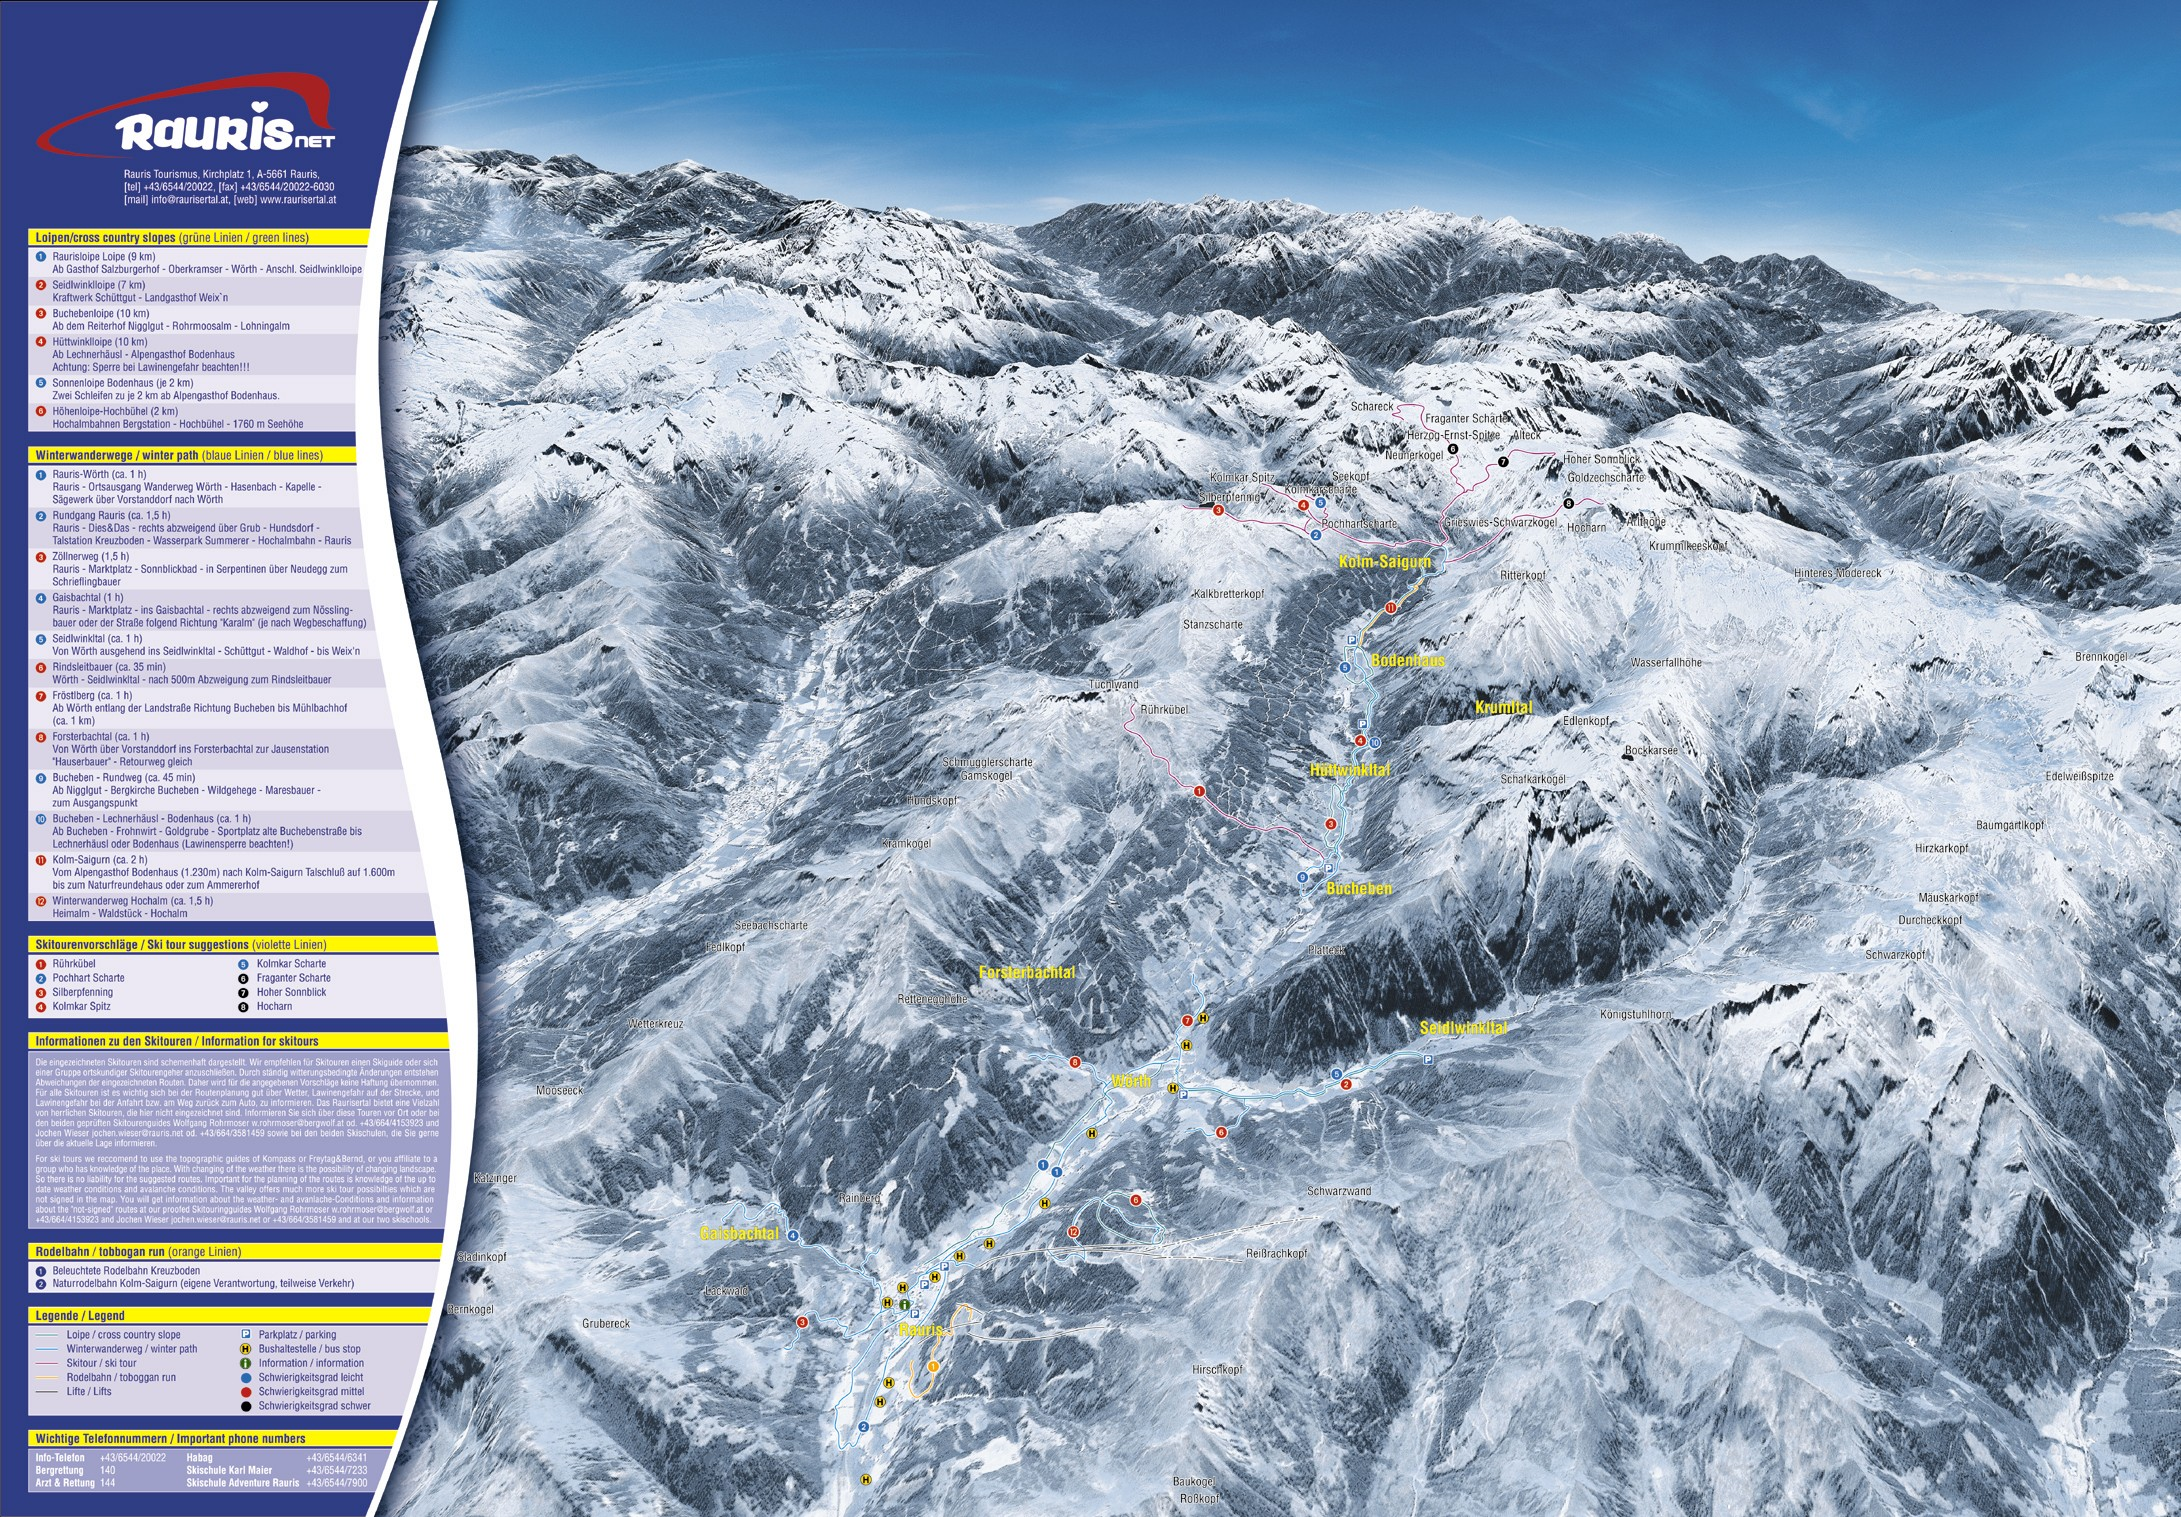 Rauris Piste / Trail Map